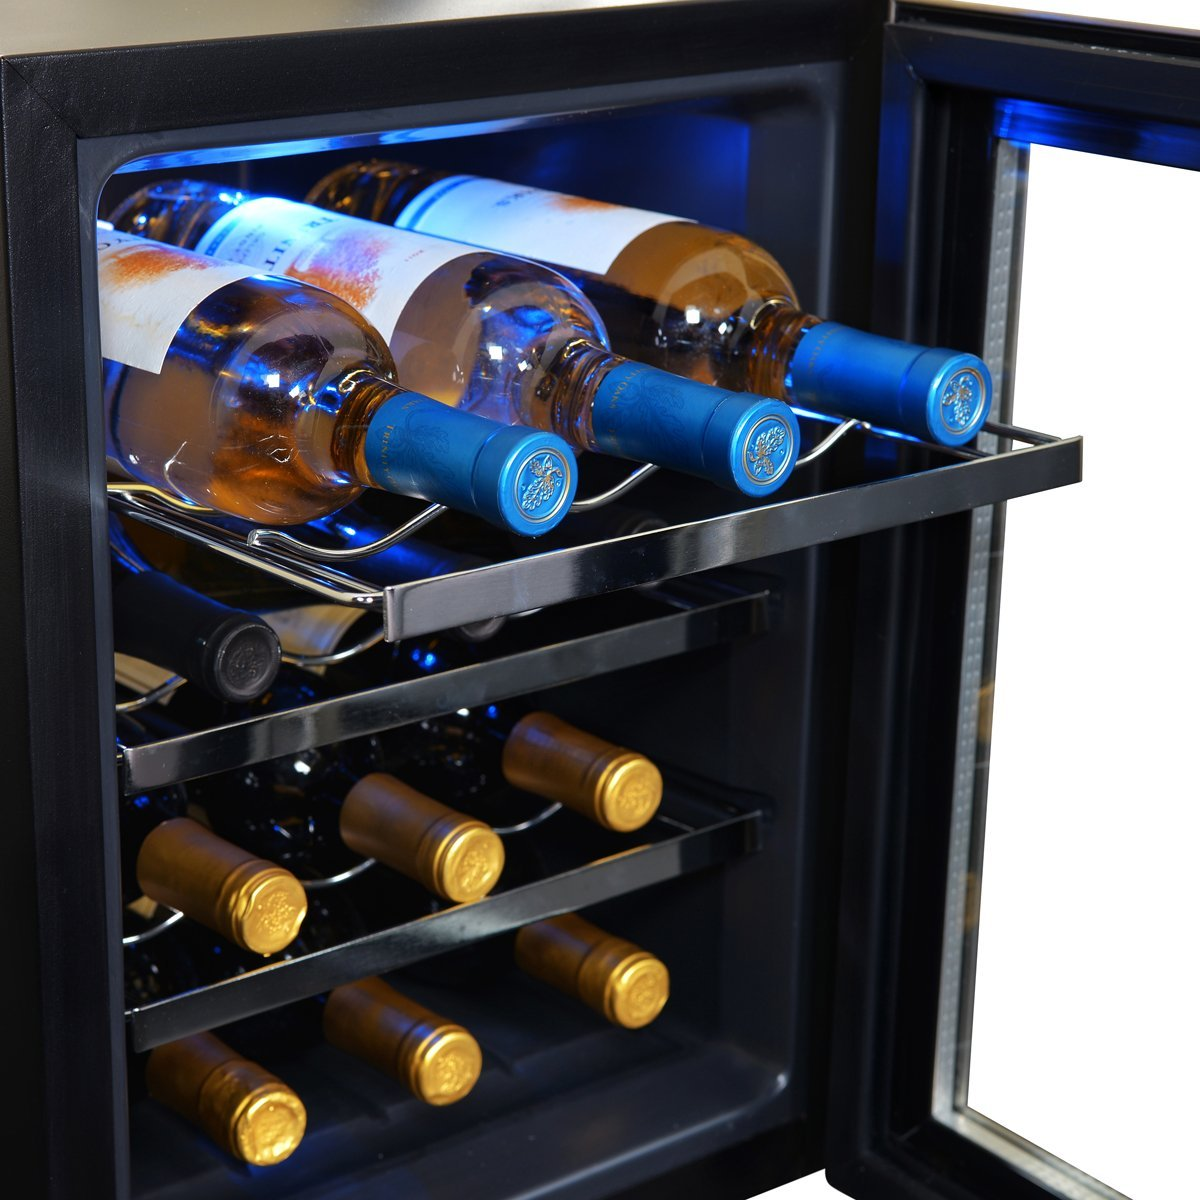 NewAir AW-121E Thermoelectric Wine Cooler-12 Bottle